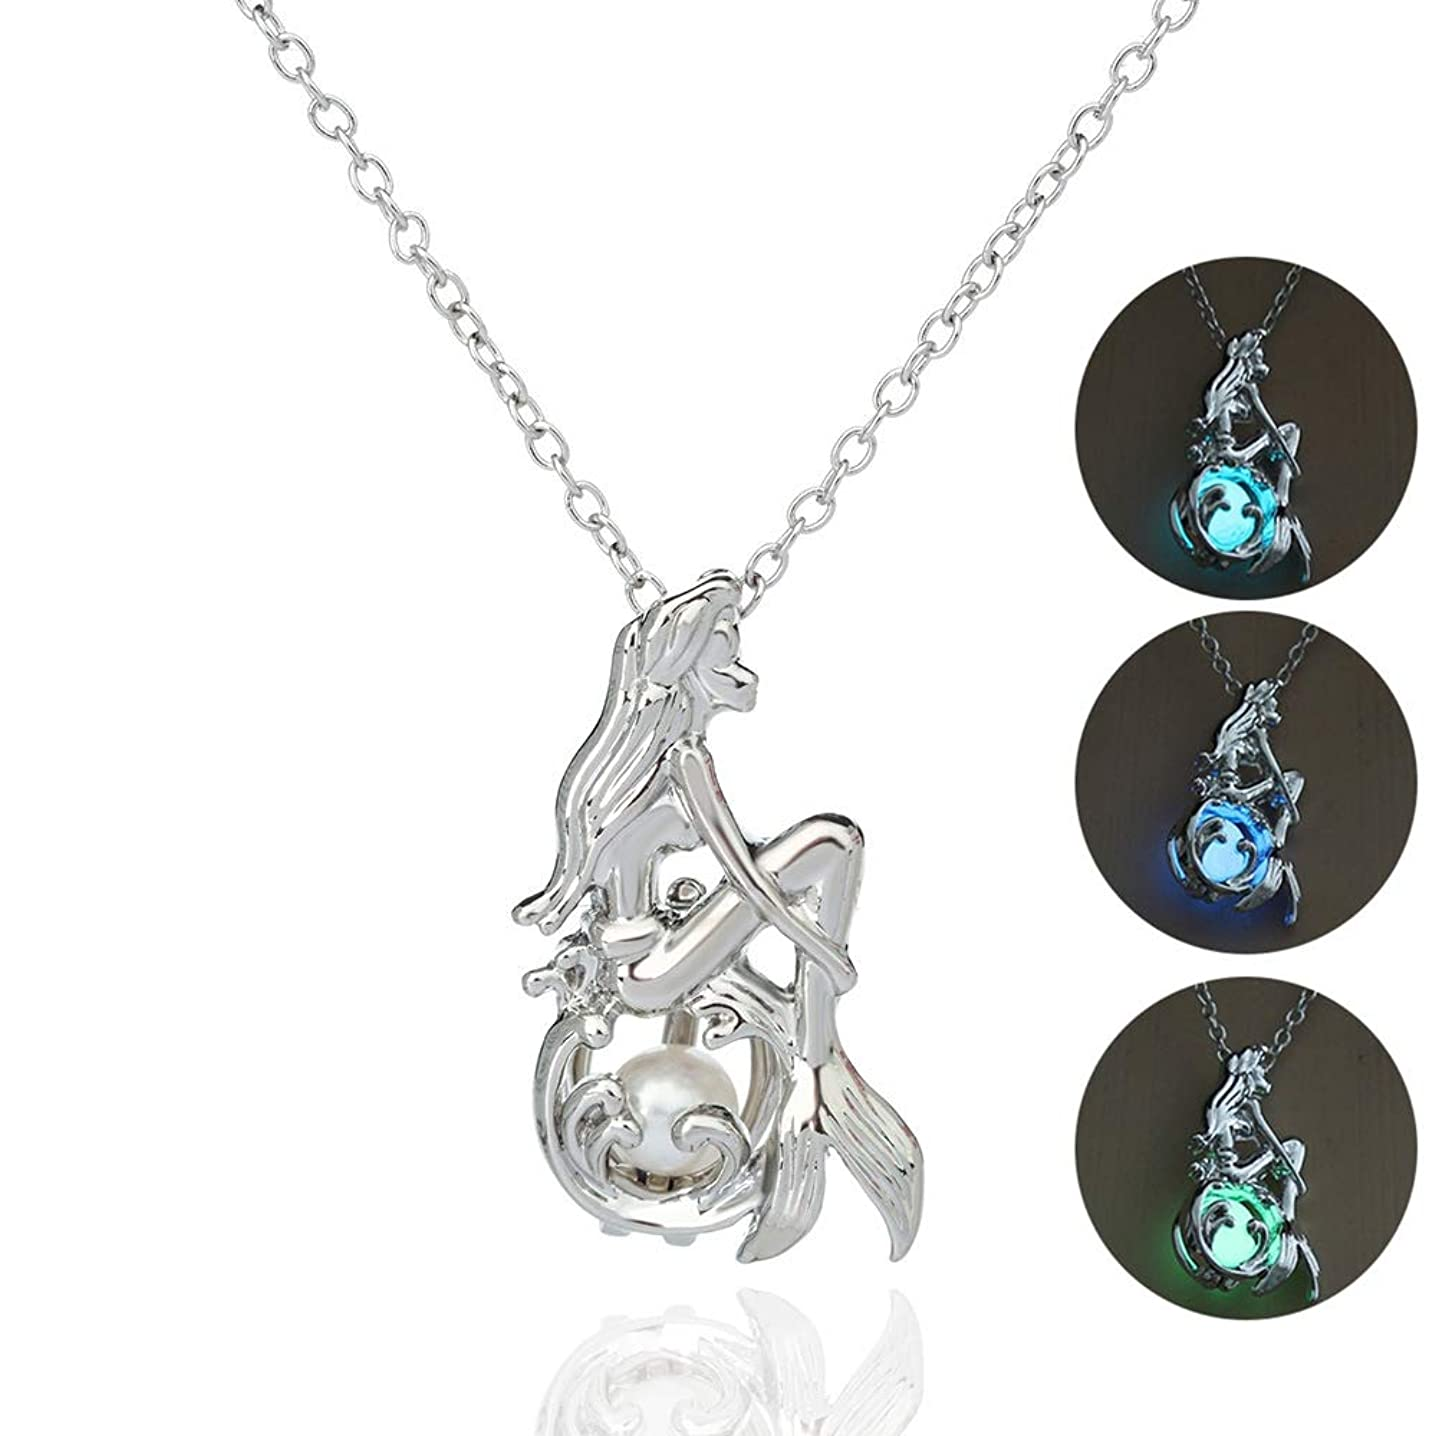 3 Colors Glow in The Dark Necklace Steampunk Hollow Pendant with Chain for Women (Mermaid)